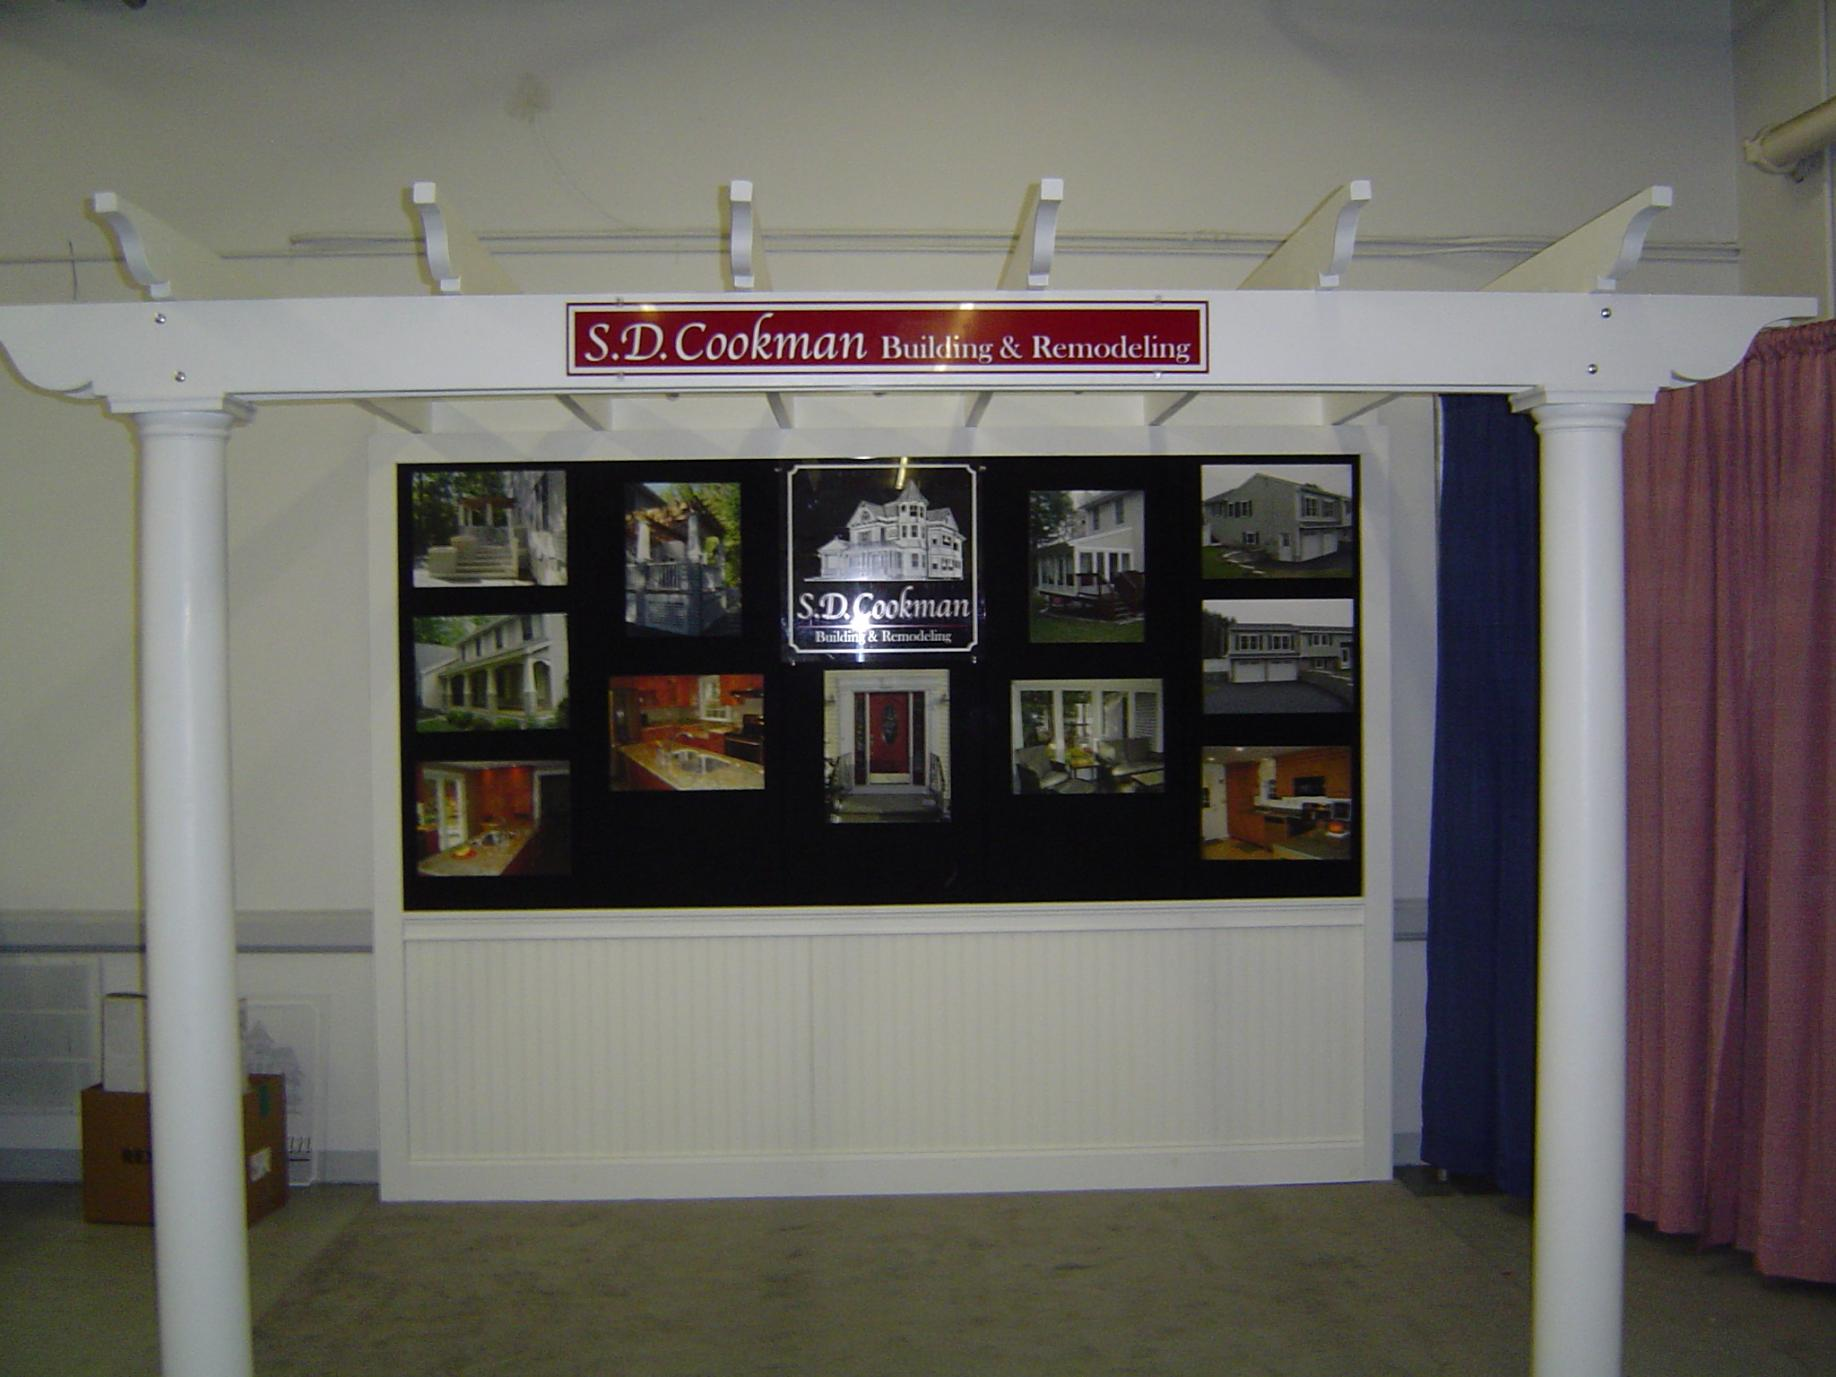 Need Trade/home Show Booth Design Ideas/furniture